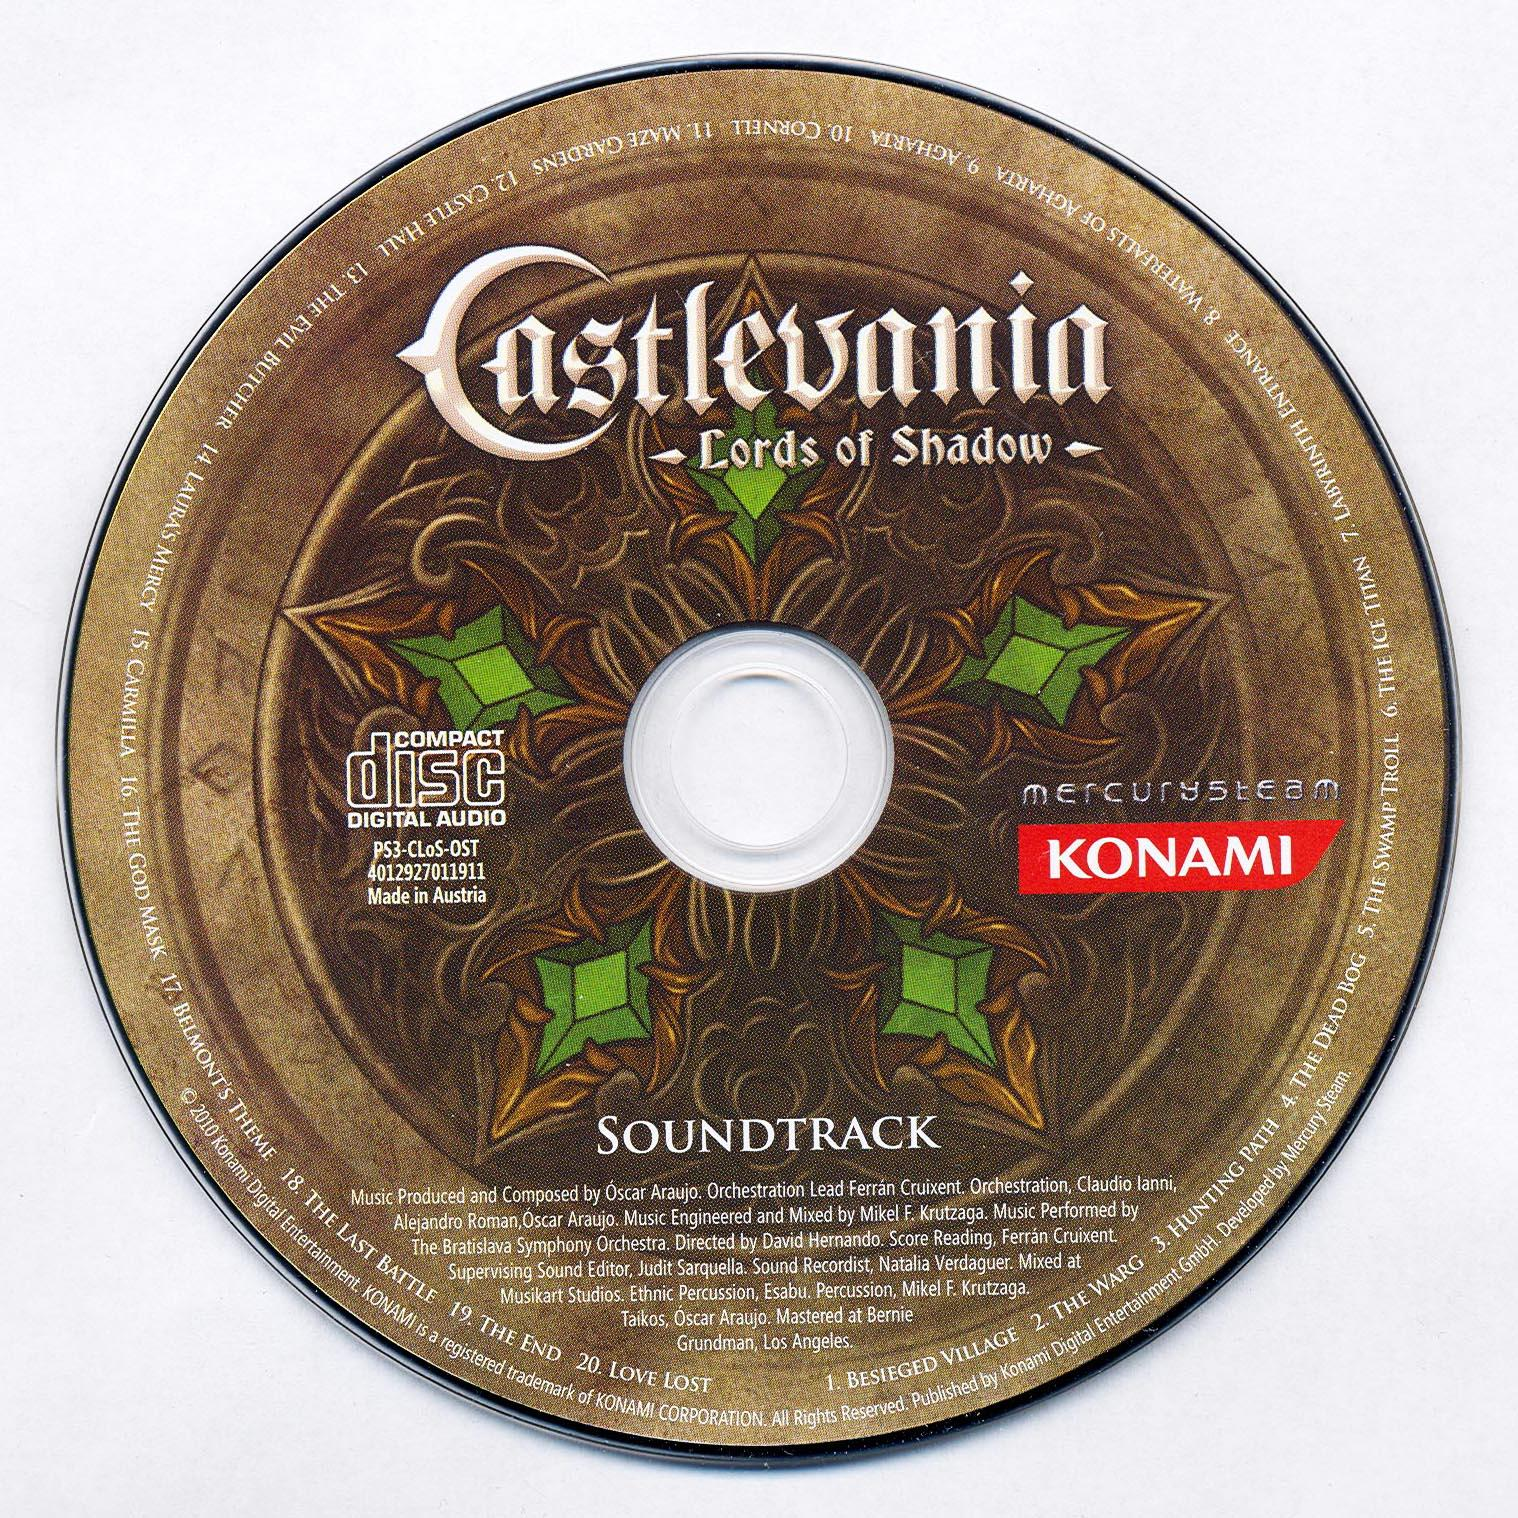 Castlevania: Lords of Shadow 2 (Region Free) PC Download